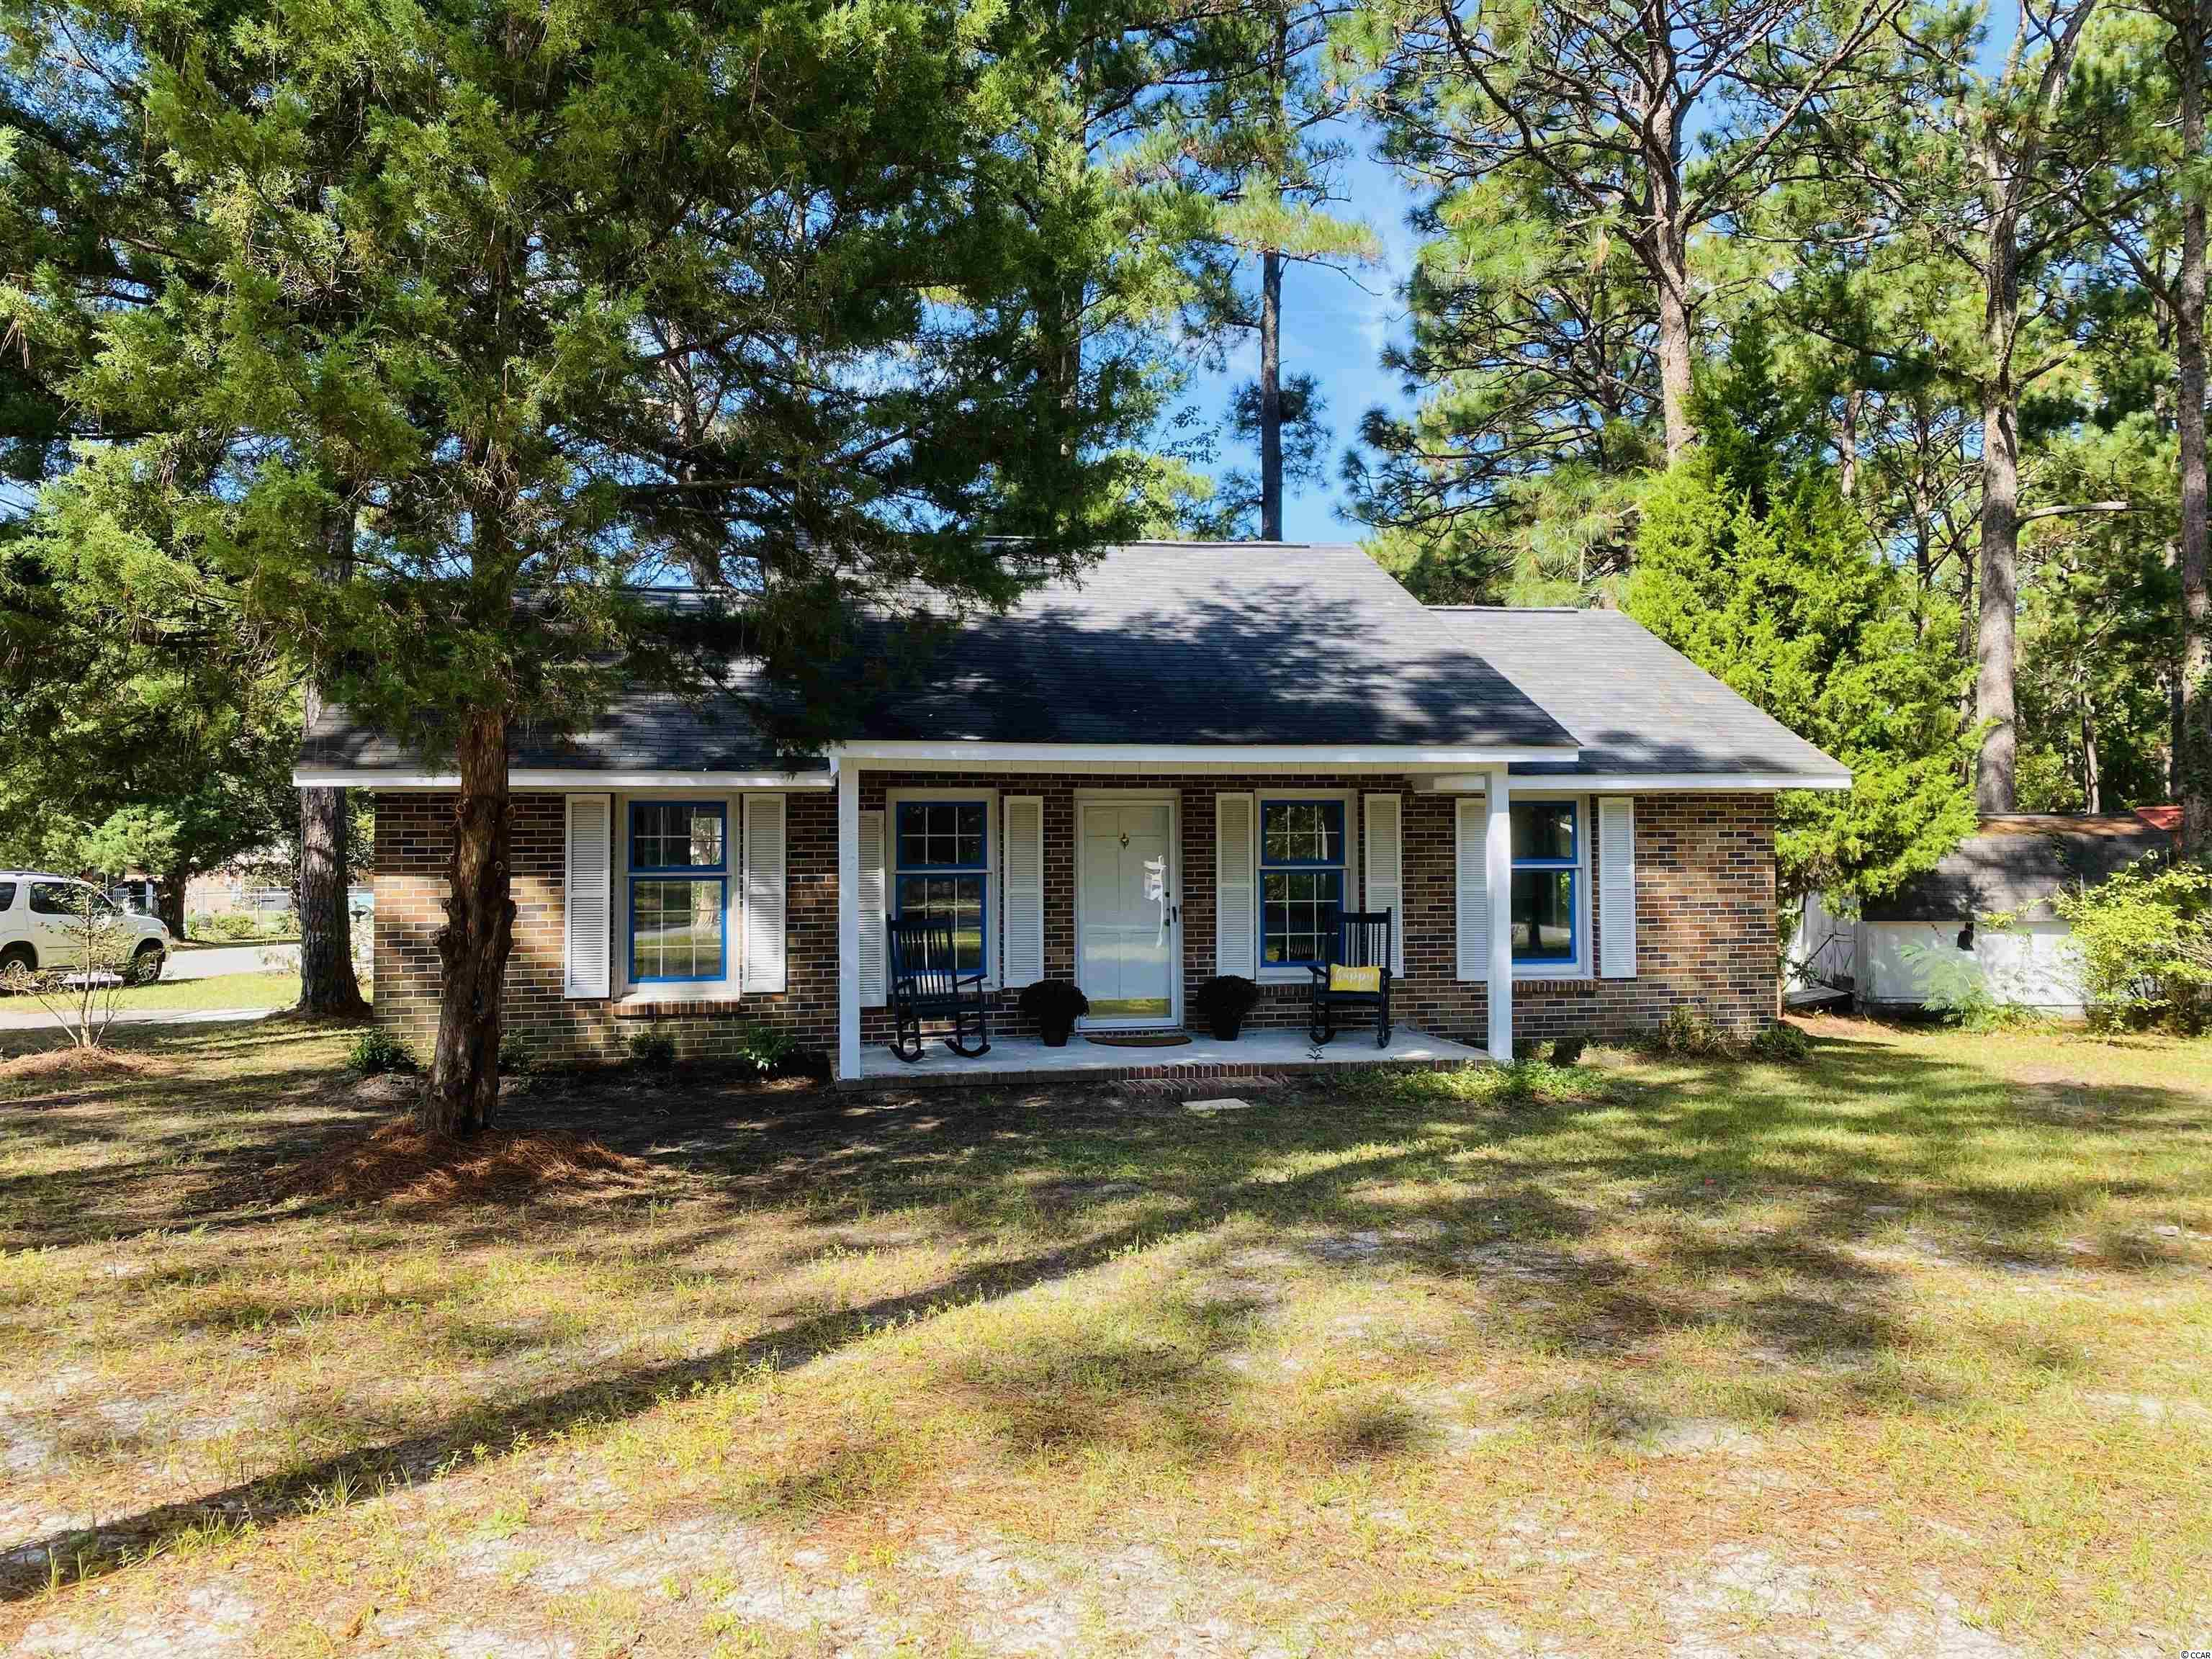 Cute brick ranch home located in the Maryville area of historic Georgetown, South Carolina!  2512 Old Charleston Road - split bedroom floor plan with three bedrooms and one and a half baths.  Great open living/dining/kitchen space and lots of natural light.  Nice big corner lot, covered front porch to relax on, carport, utility space and detached shed. Within a five minute drive to historic downtown Georgetown waterfront boardwalk, wonderful dining and fun shops. If you love the water and outdoors, enjoy any of the five rivers surrounding the area, the Waterway, saltwater creeks and the Atlantic Ocean.  Enjoy Low Country living at it's best! *Buyer is responsible for verifying square footage of home and lot.